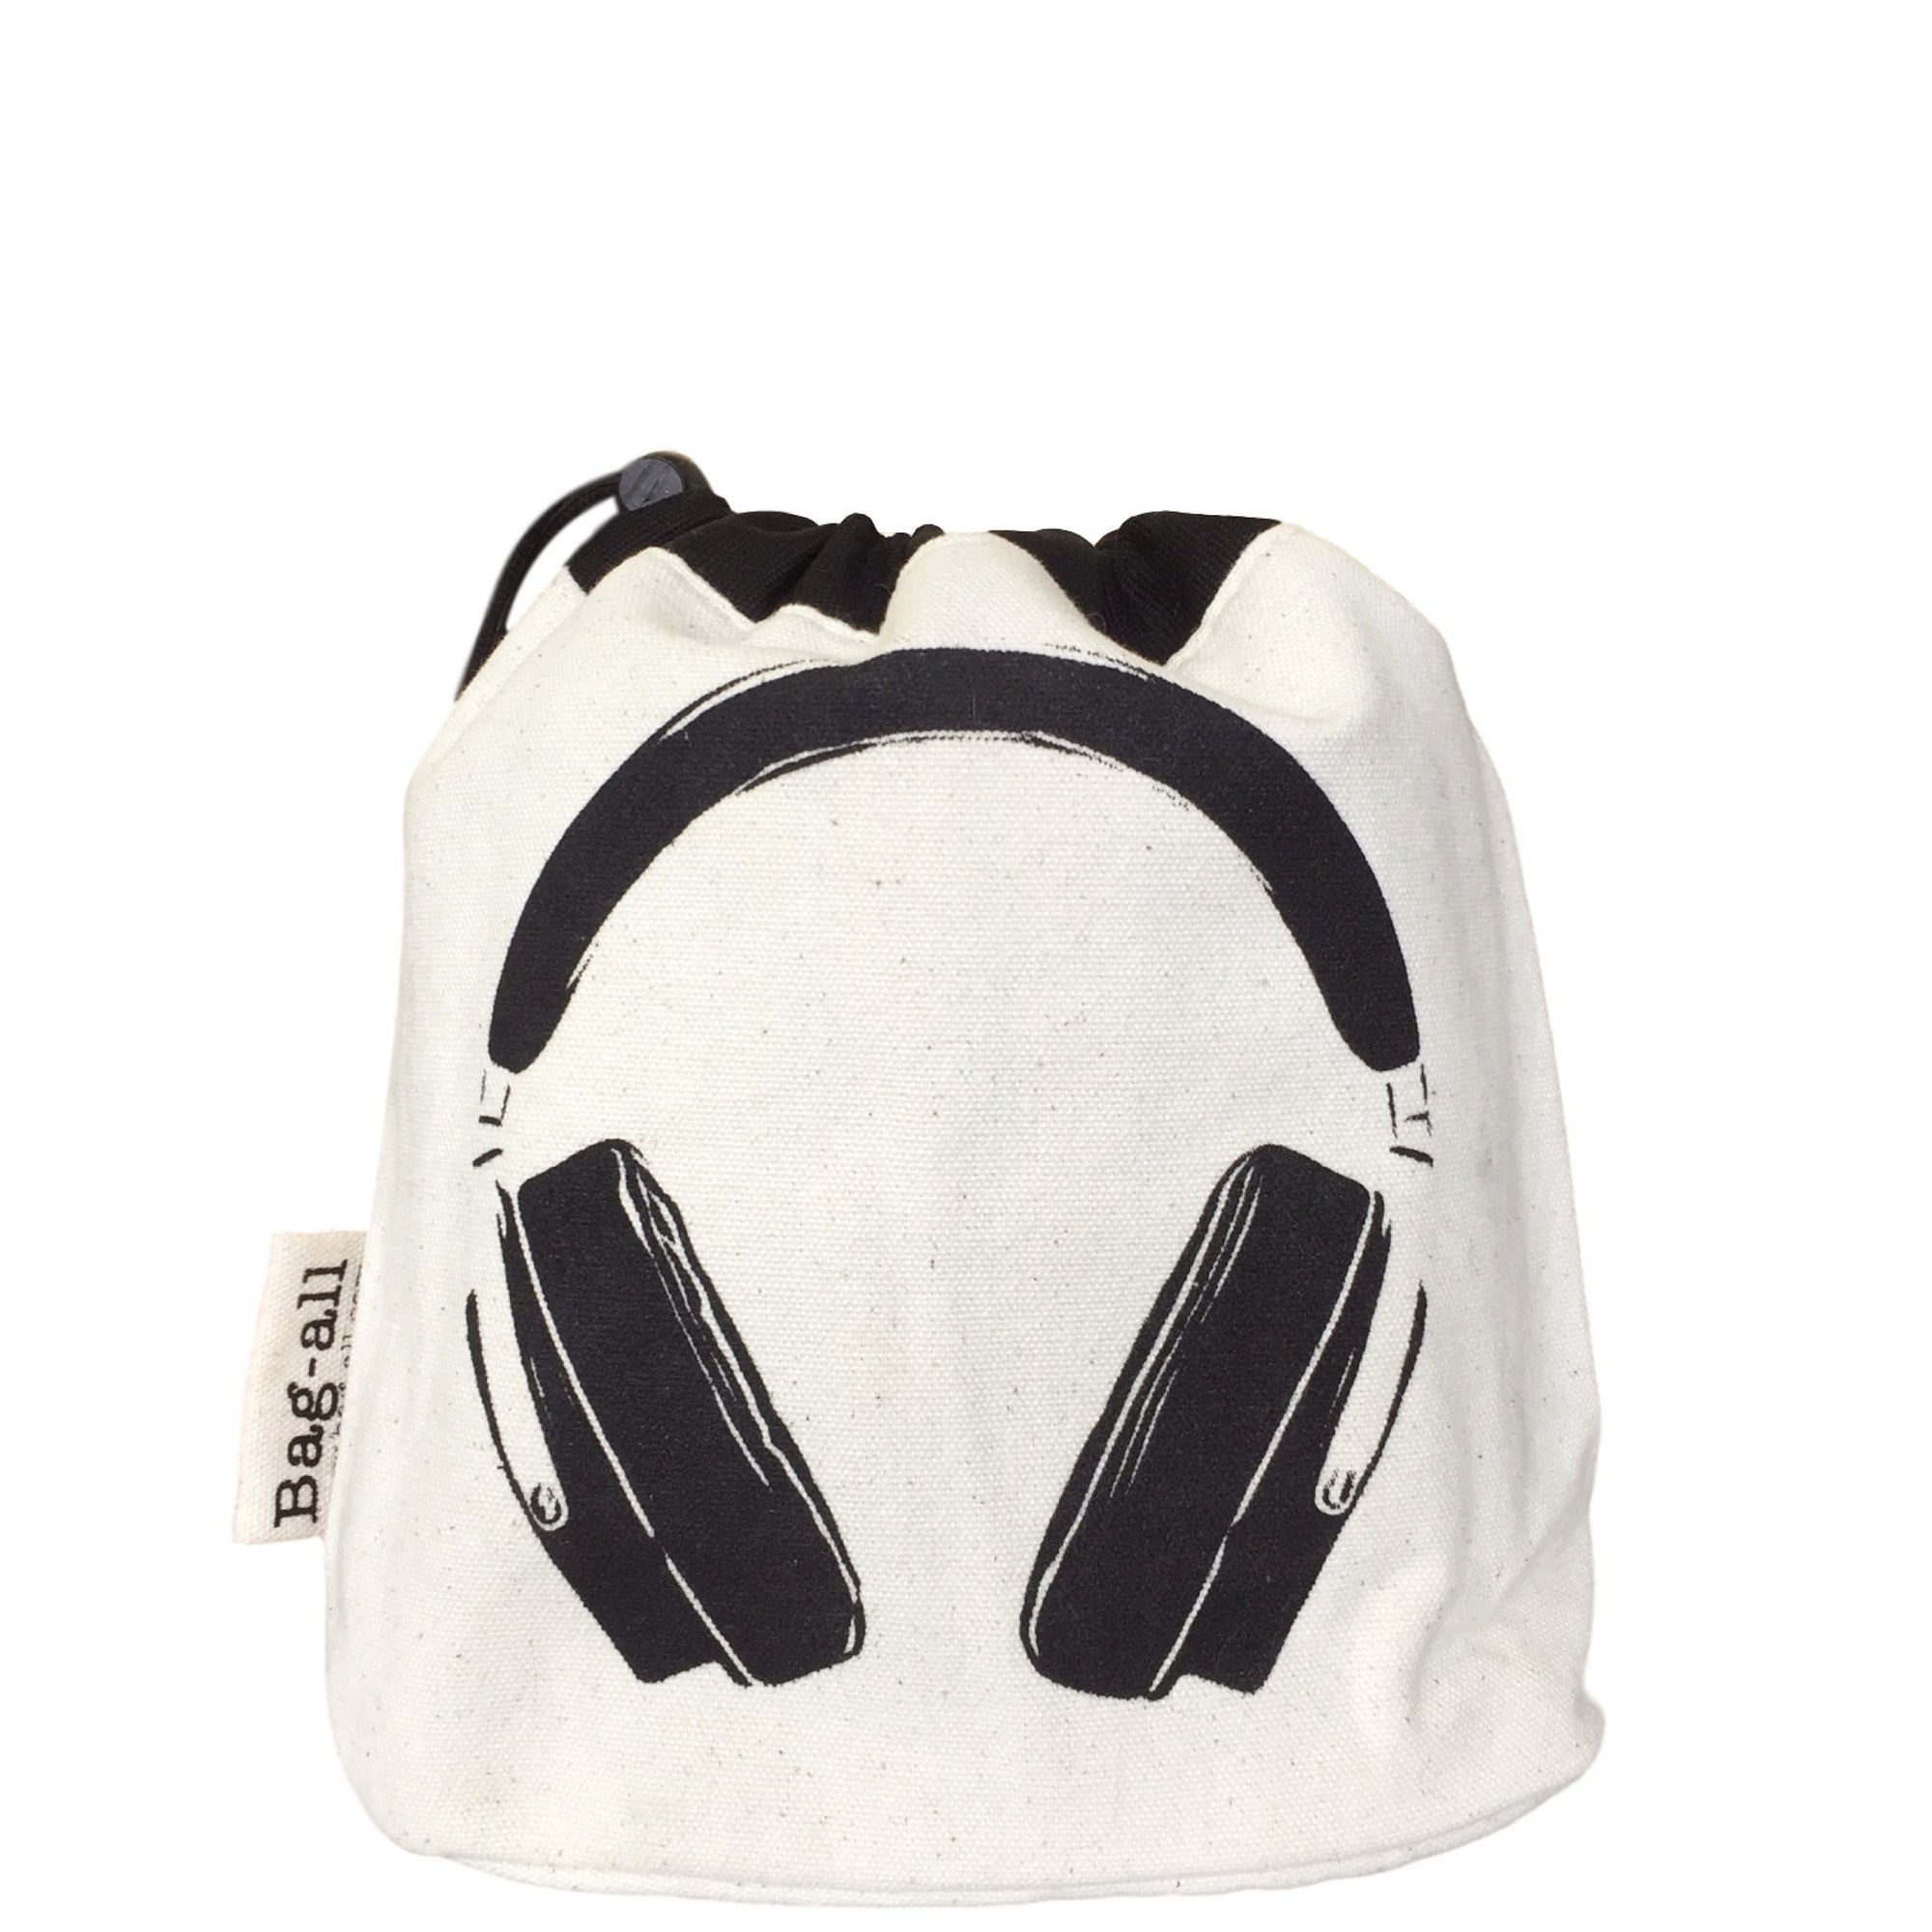 Headphone Case - Bag-all Paris